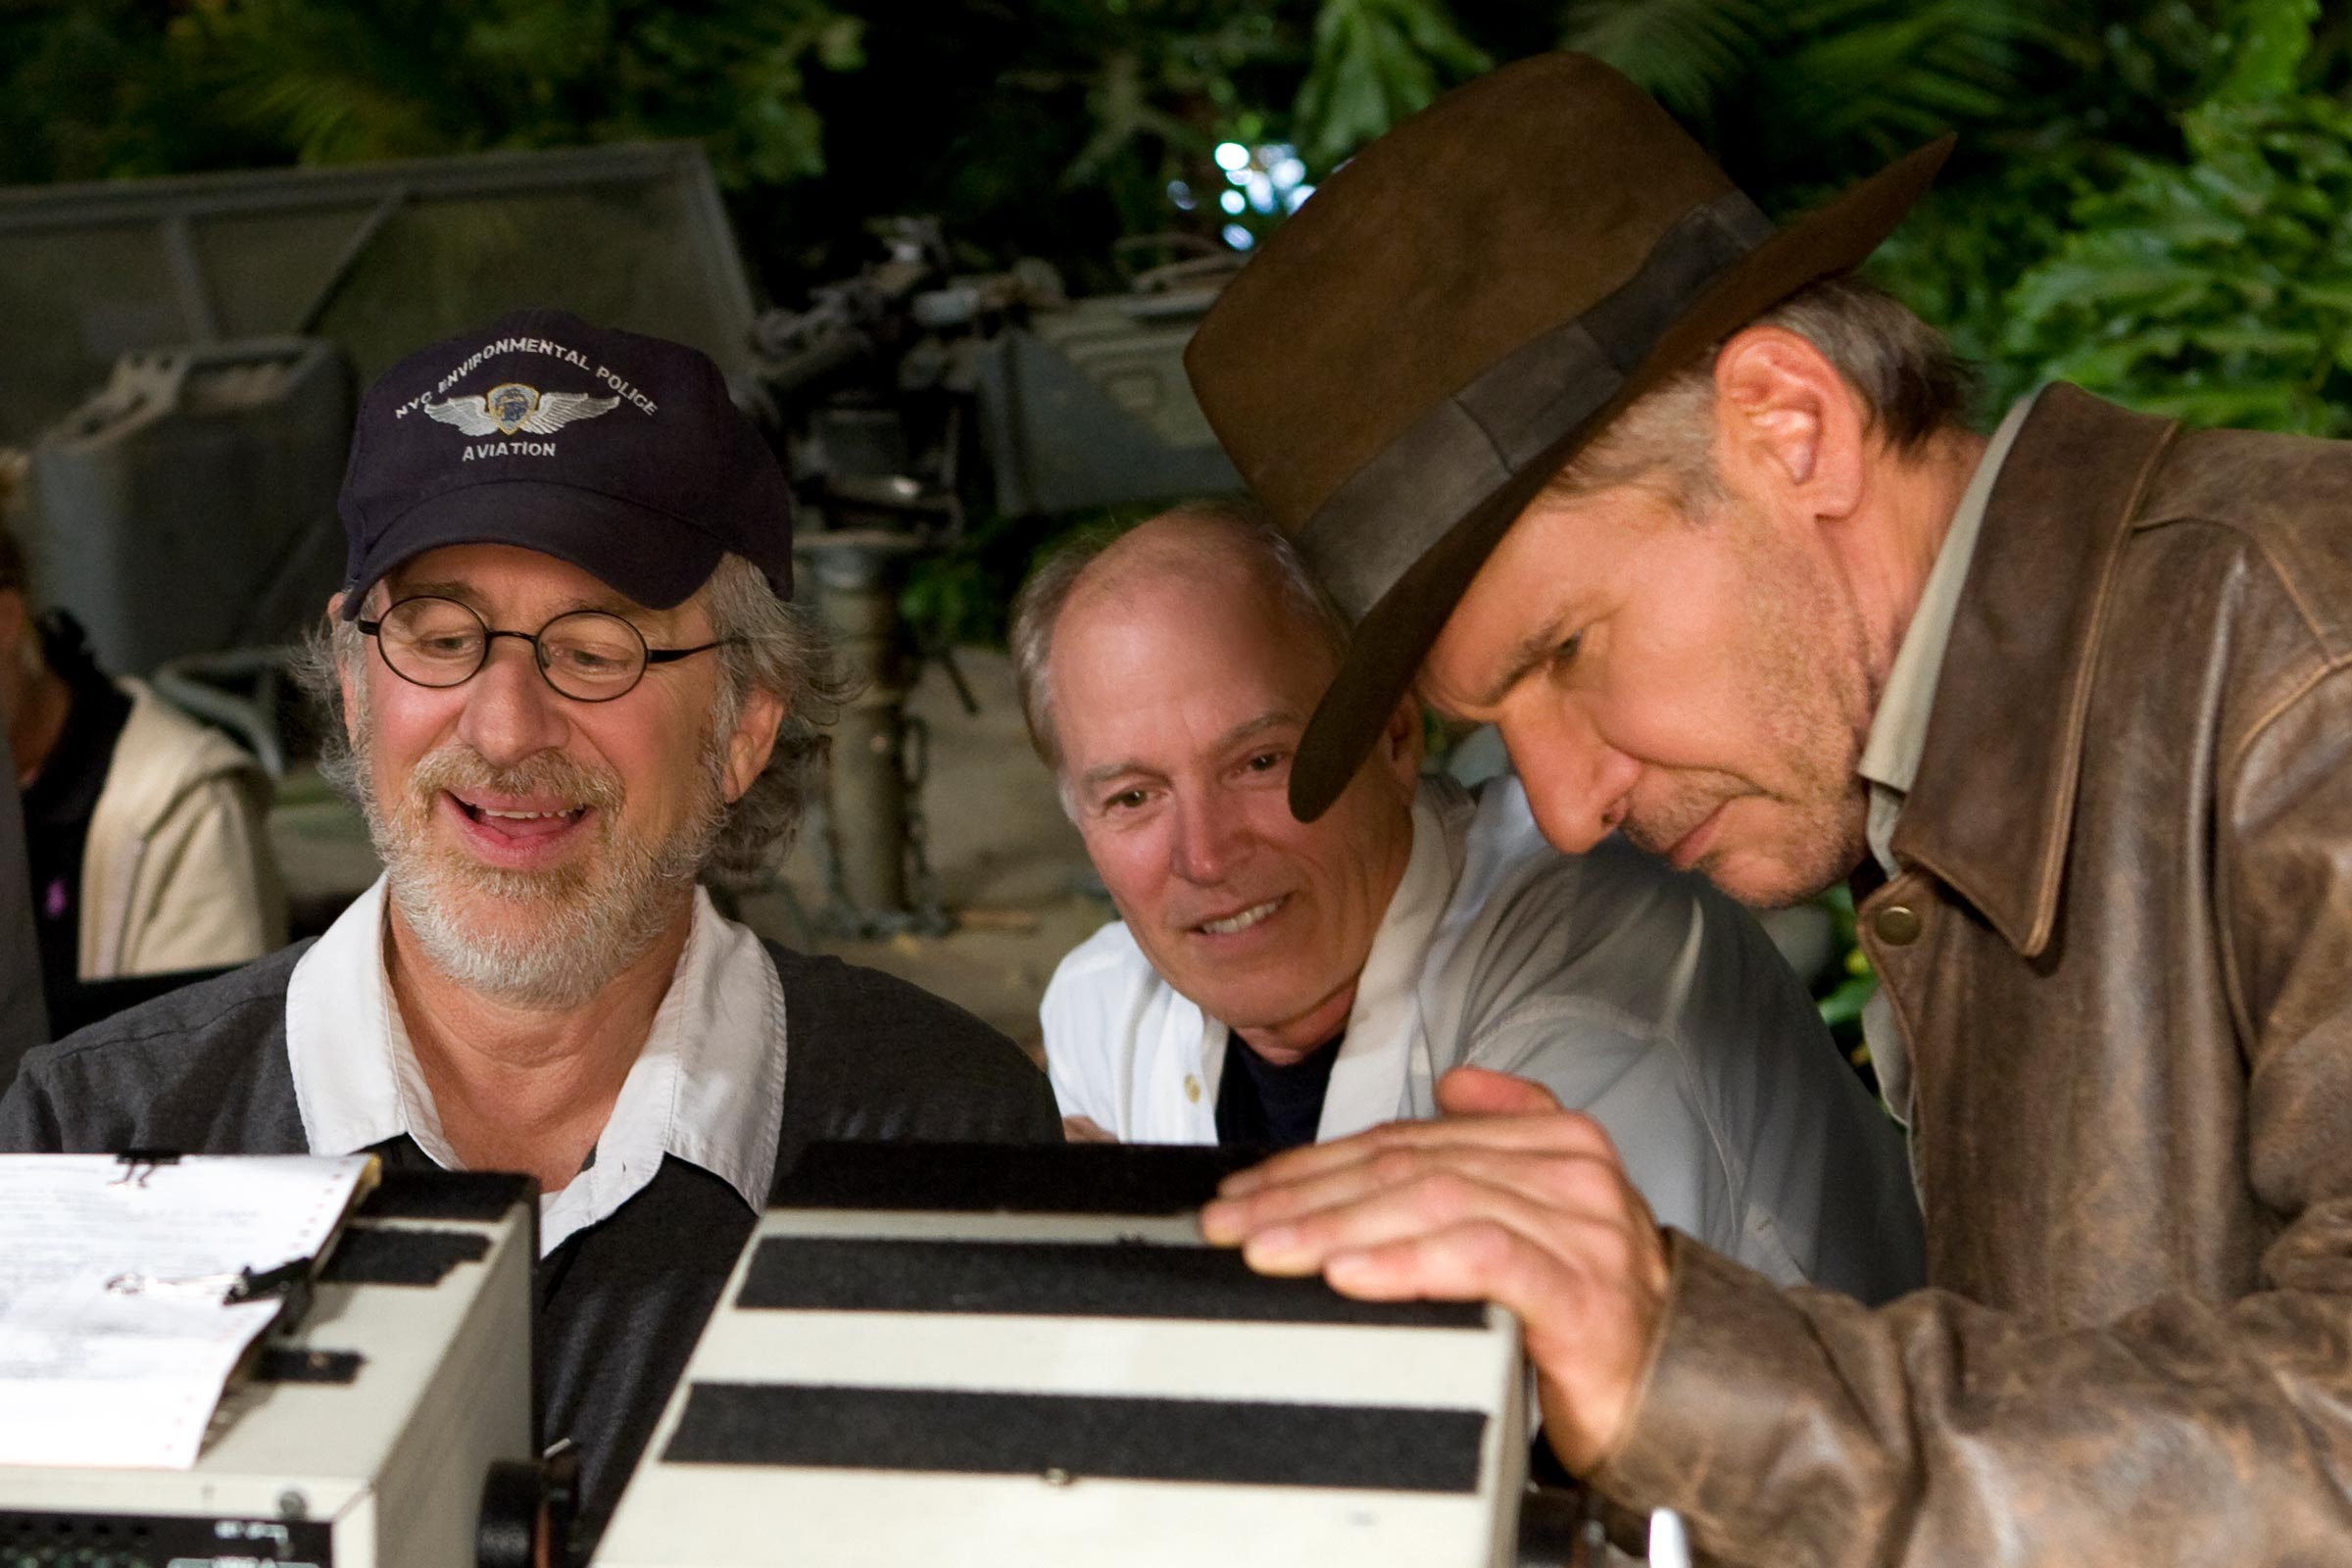 Indiana Jones 5: James Mangold al posto di Spielberg per la regia del film?